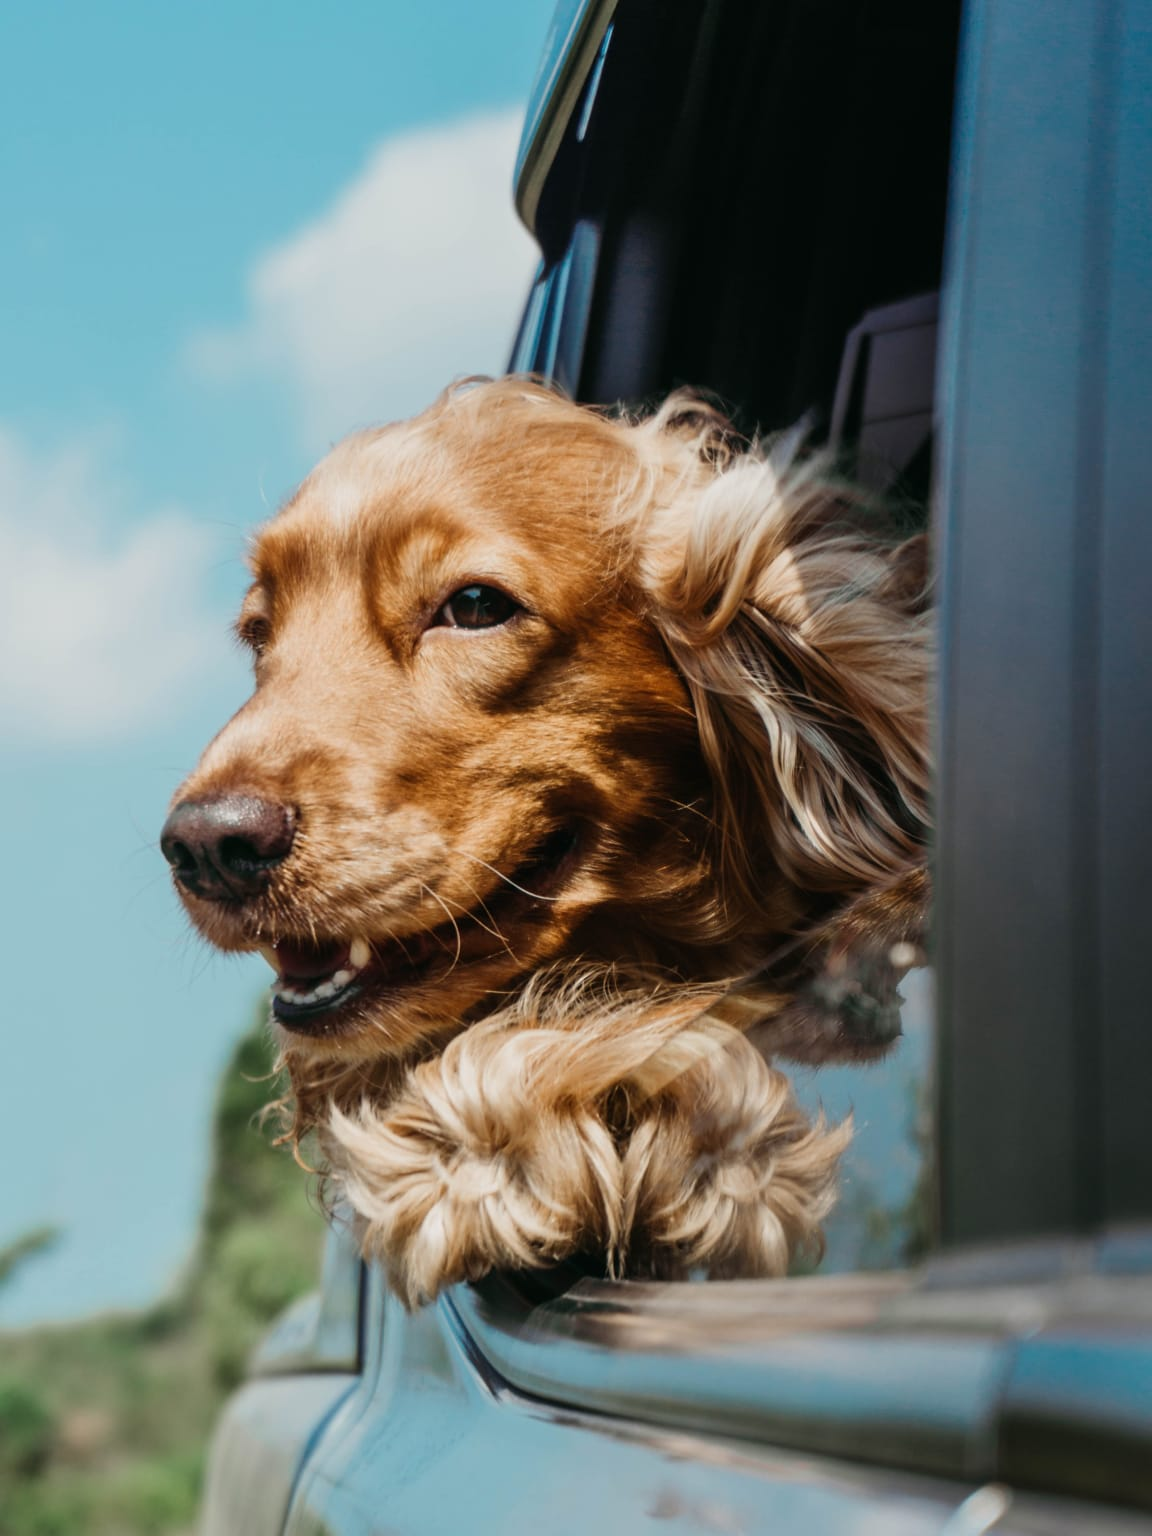 Dog with head out of car window near Lakeview at Superstition Springs in Mesa, AZ